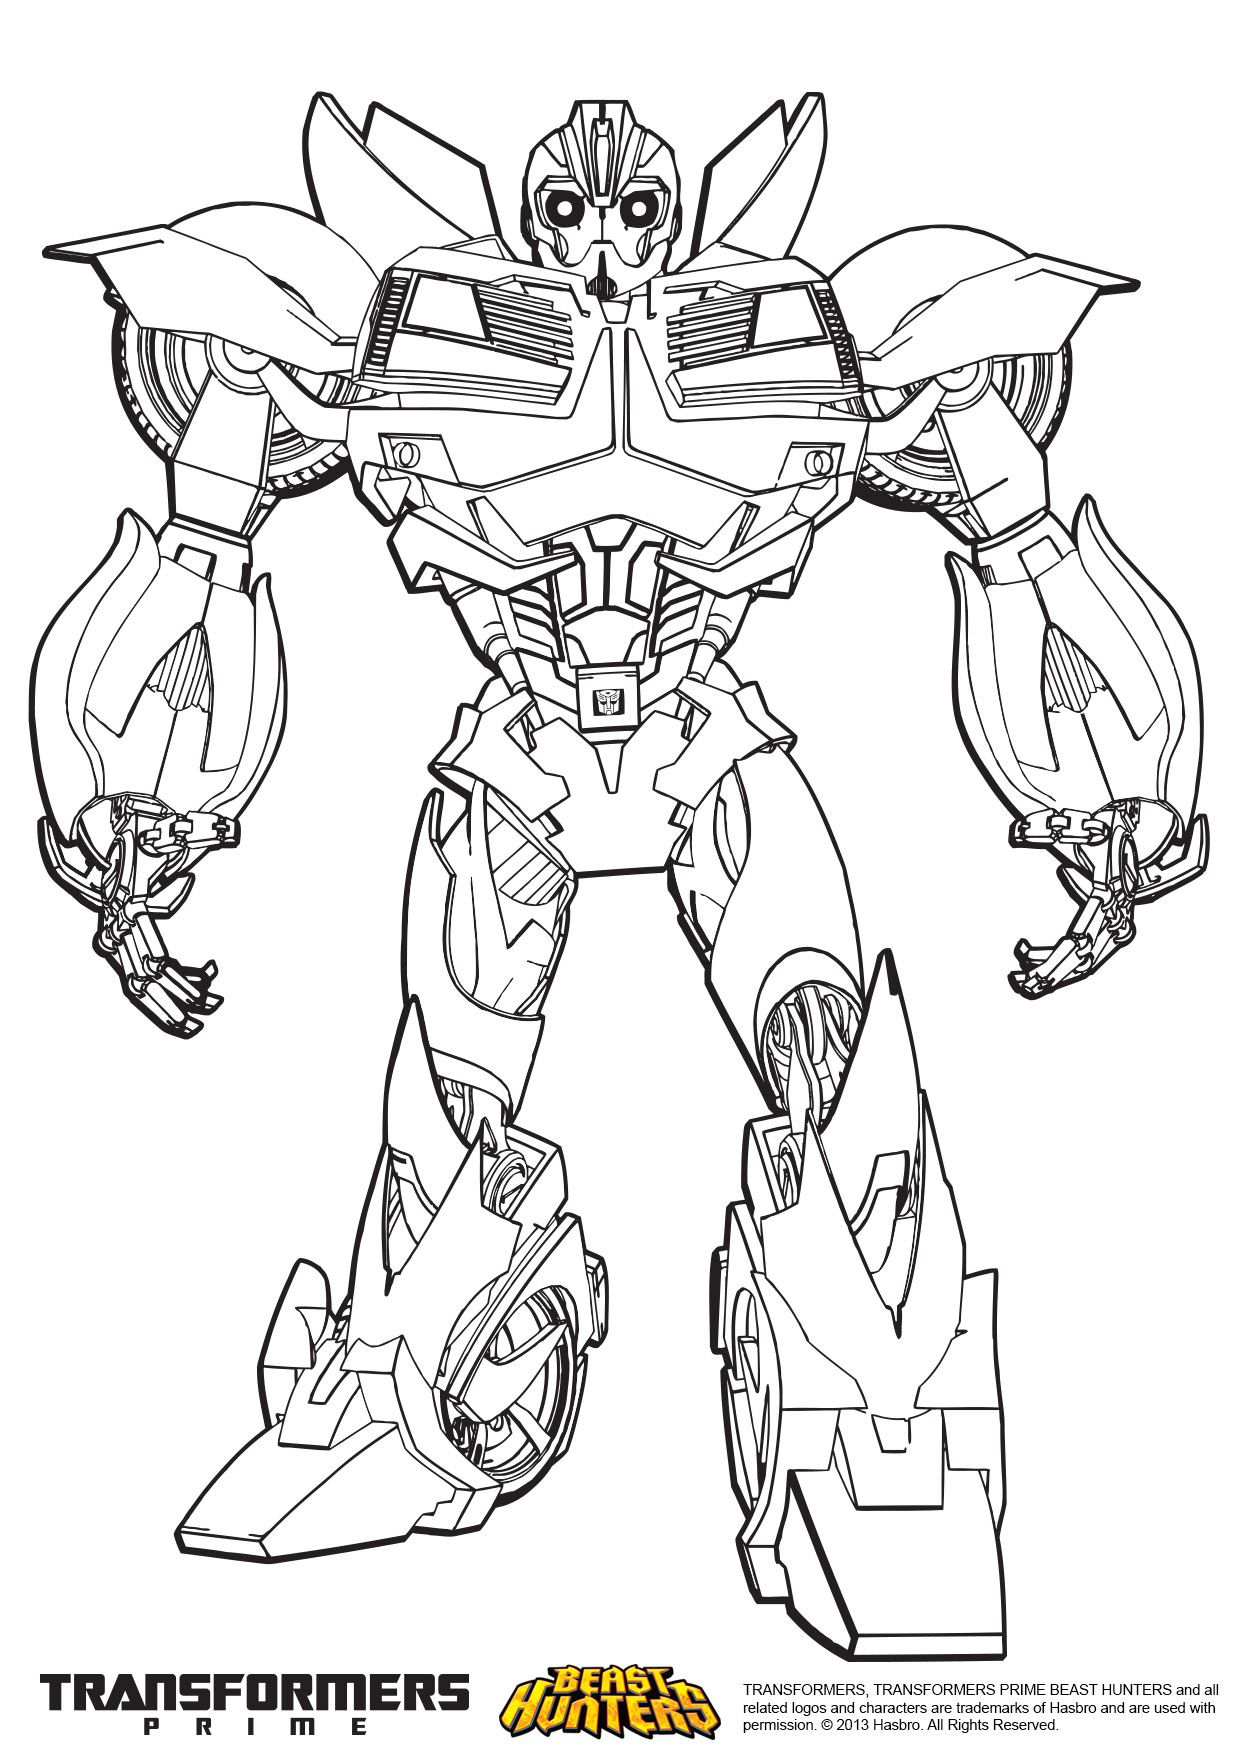 transformers prime beast hunters coloring pages google search